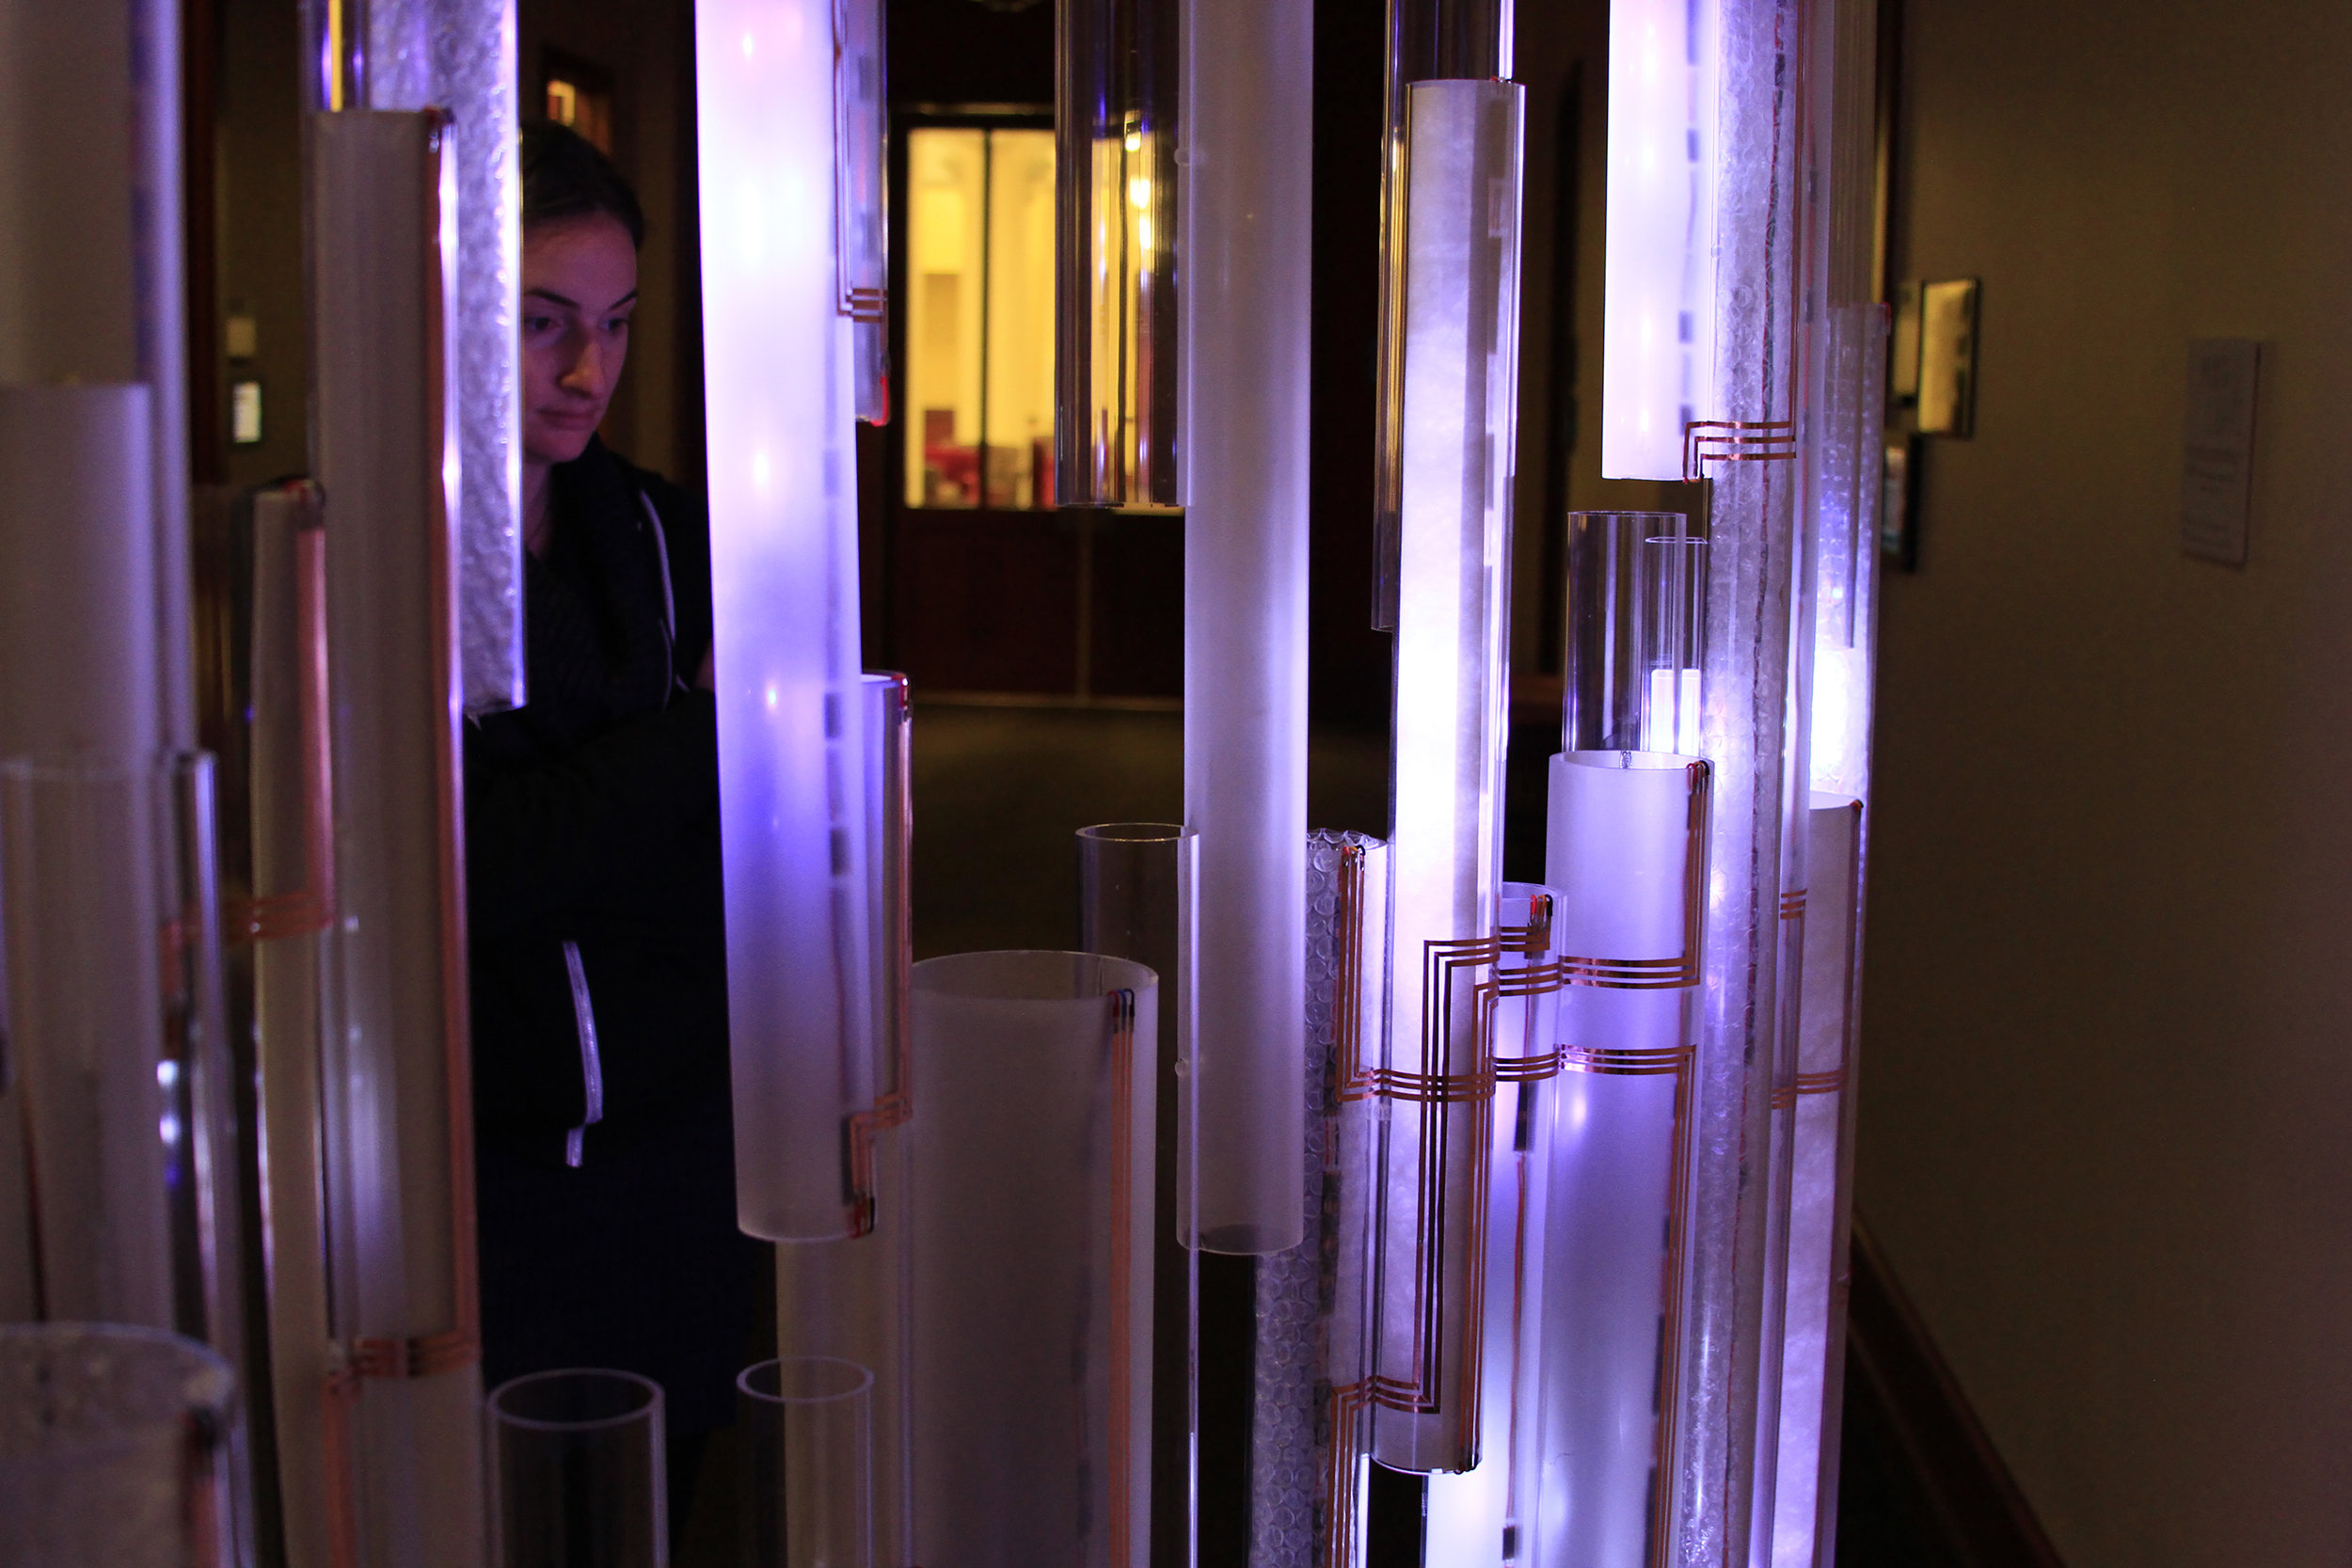 Mindful Lights-with person3.jpg